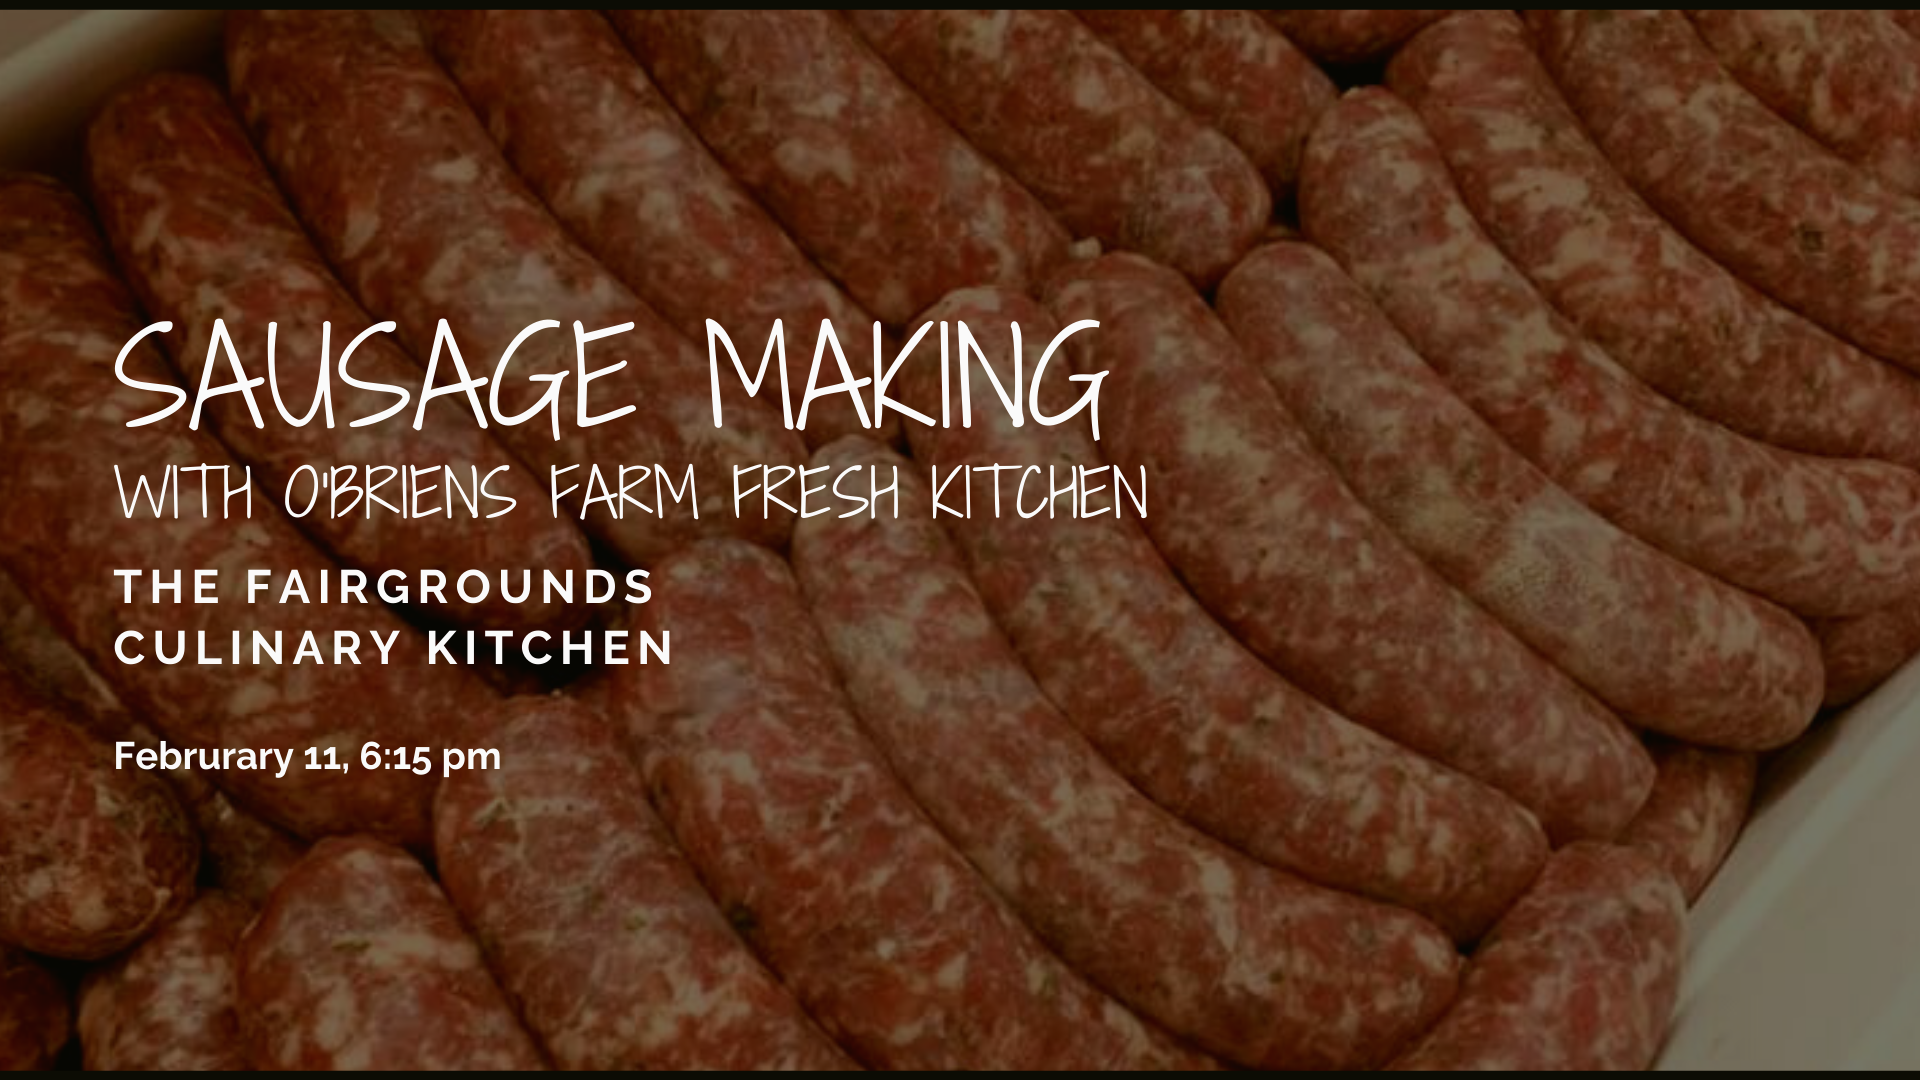 Sausage Making with O'friends Farm Fresh Kitchen. February 11